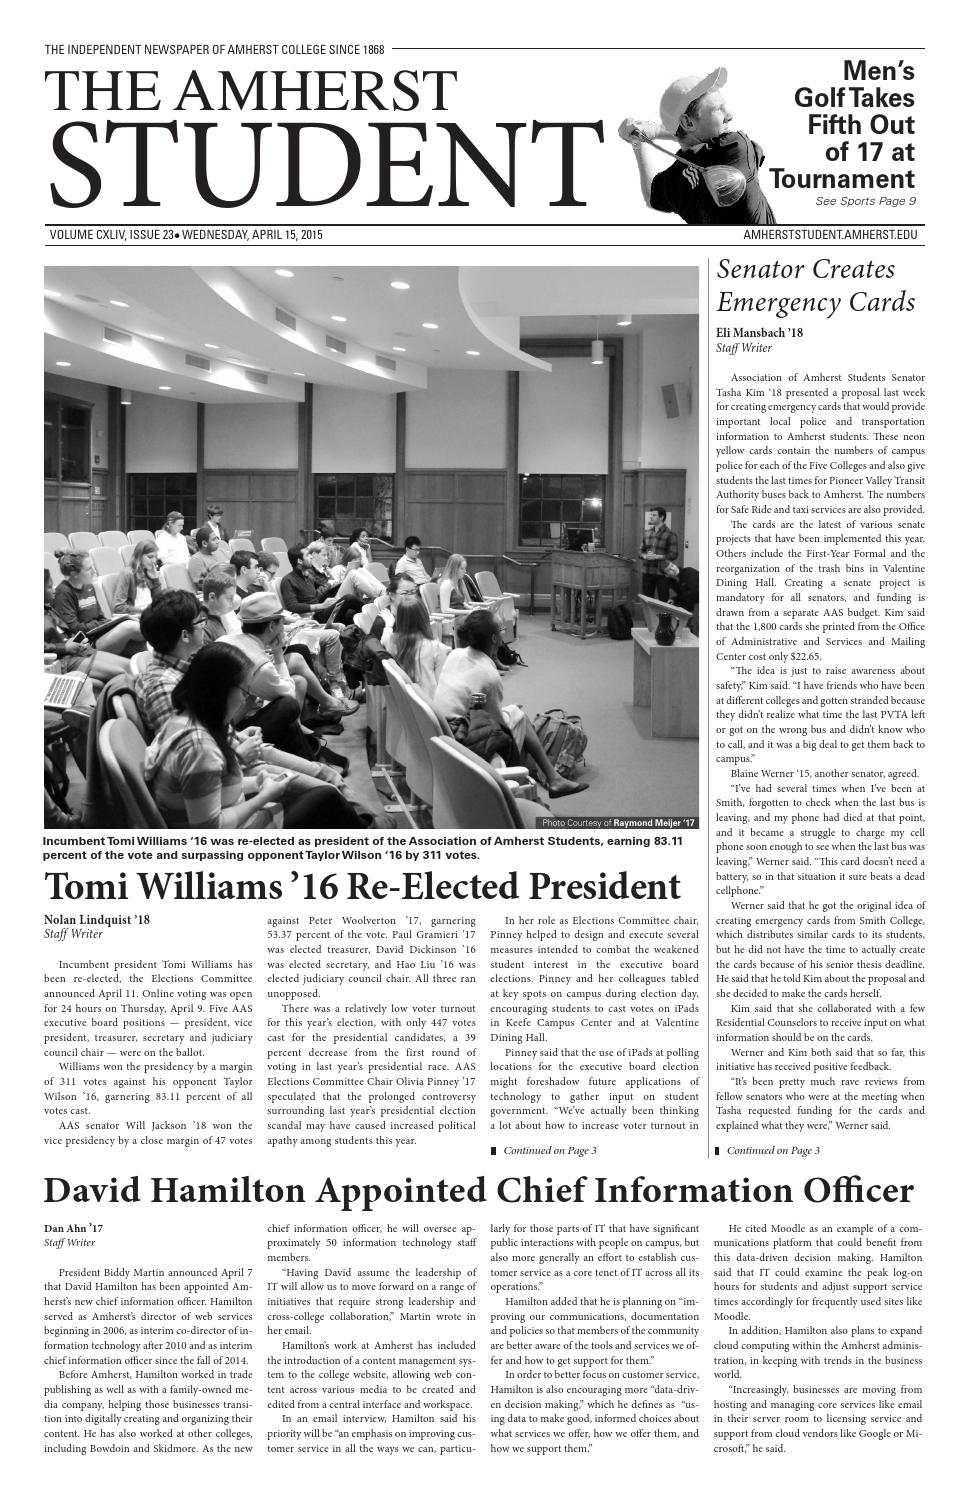 7e0b6abedc Issue 23 by The Amherst Student - issuu